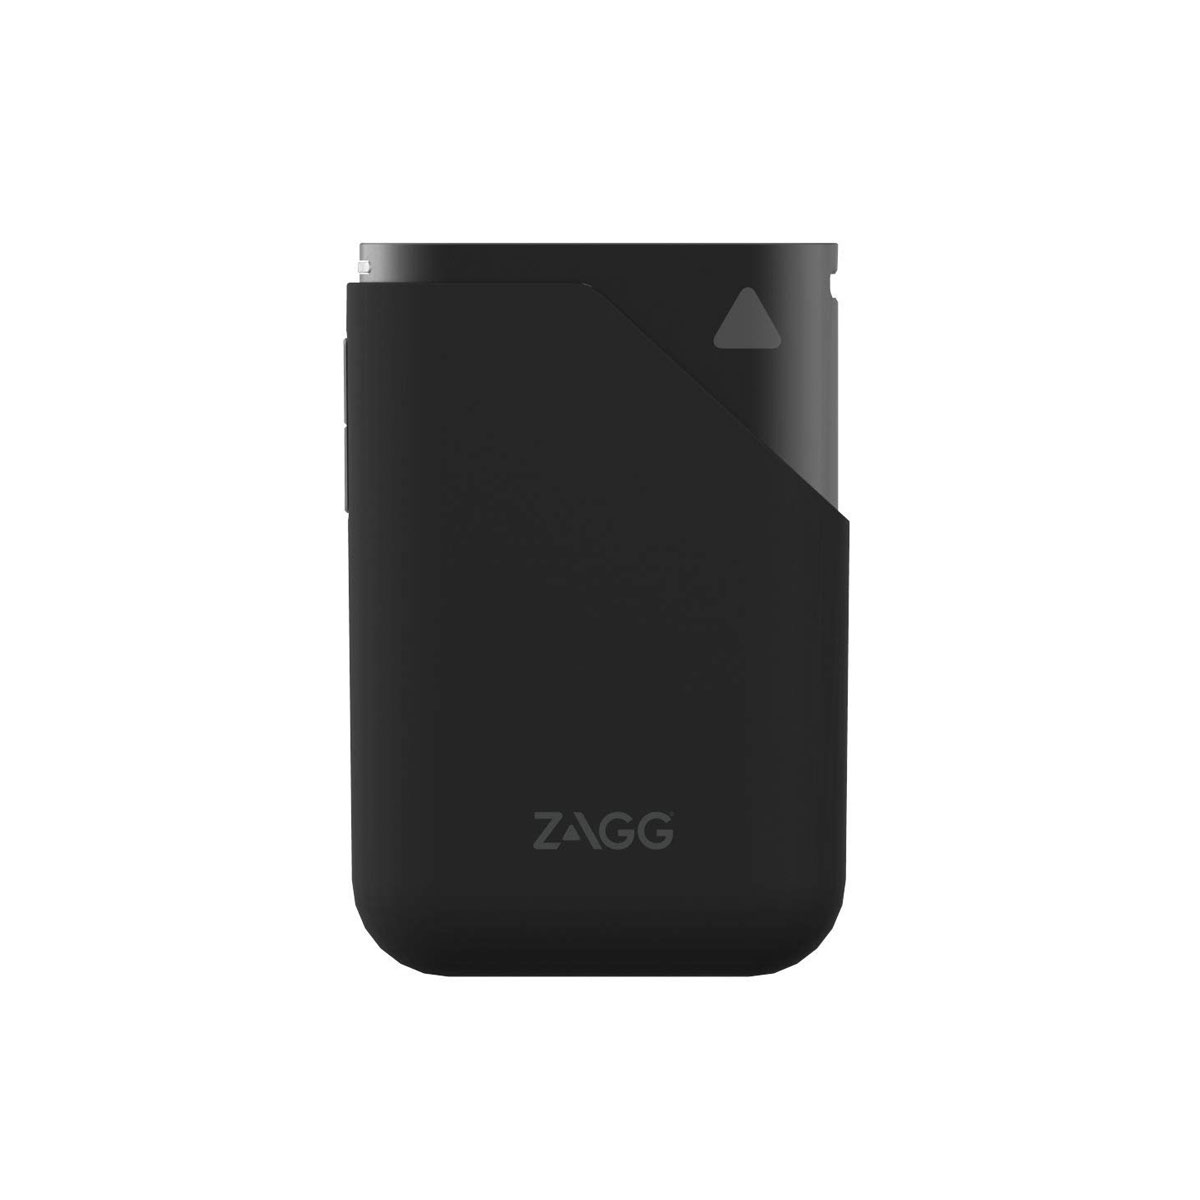 Zagg Power-Amp 6 Powerbank 6K mAh - Black